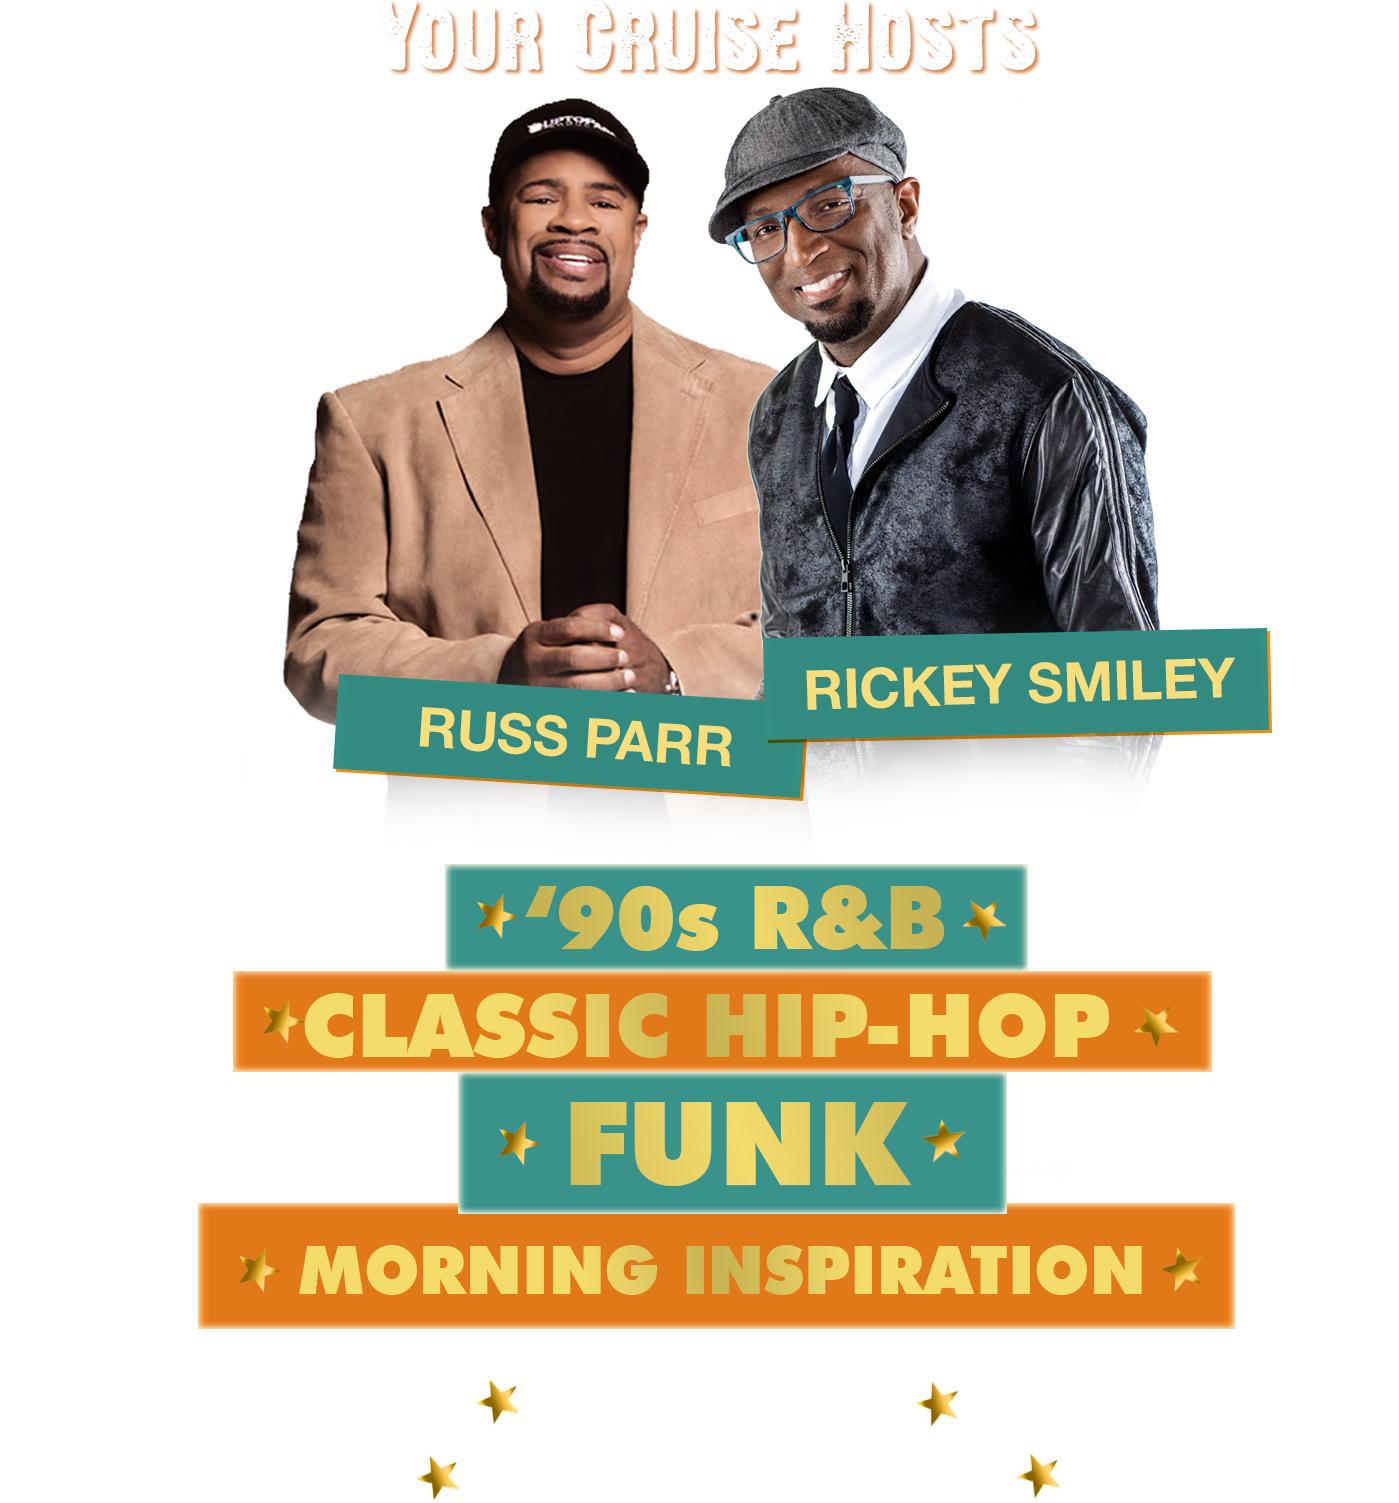 Your Cruise Hosts - Russ Parr, Rickey Smiley | 90's